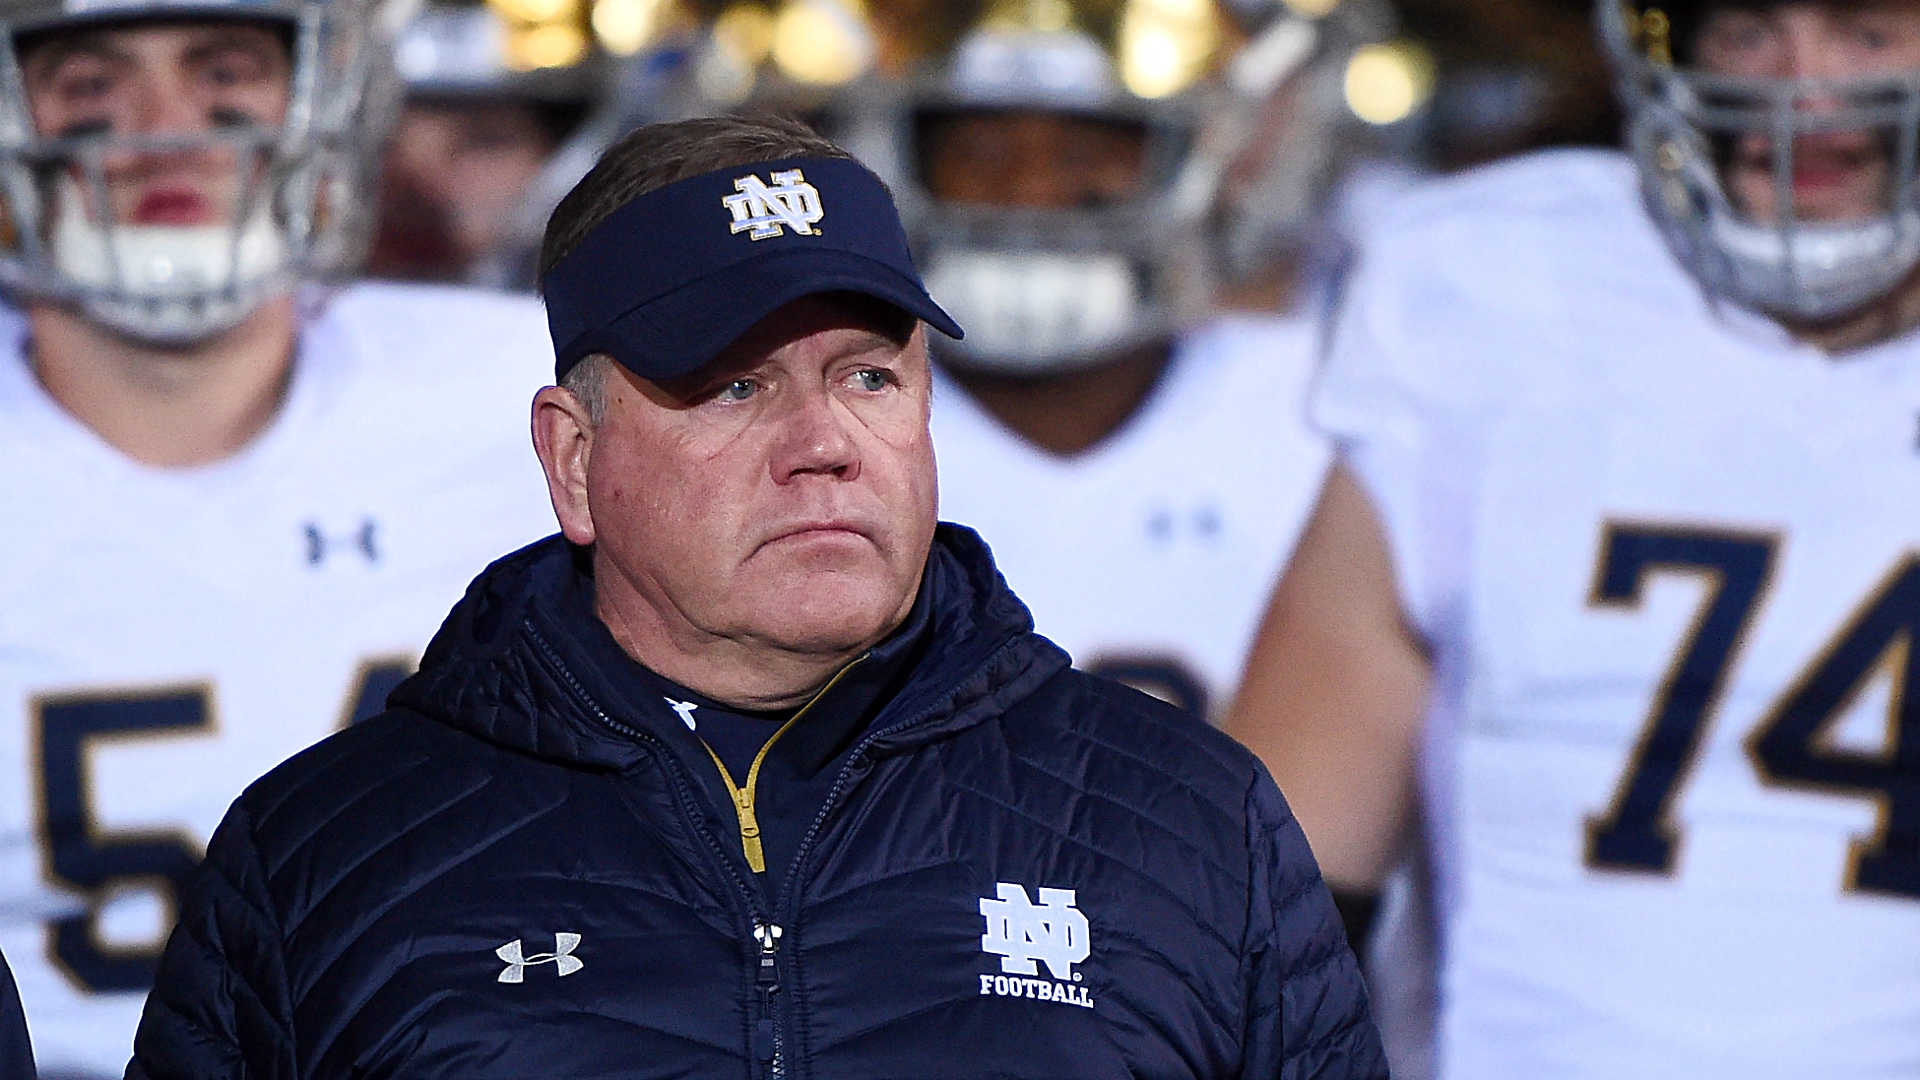 Notre Dame coach cites source of the team's COVID-19 outbreak